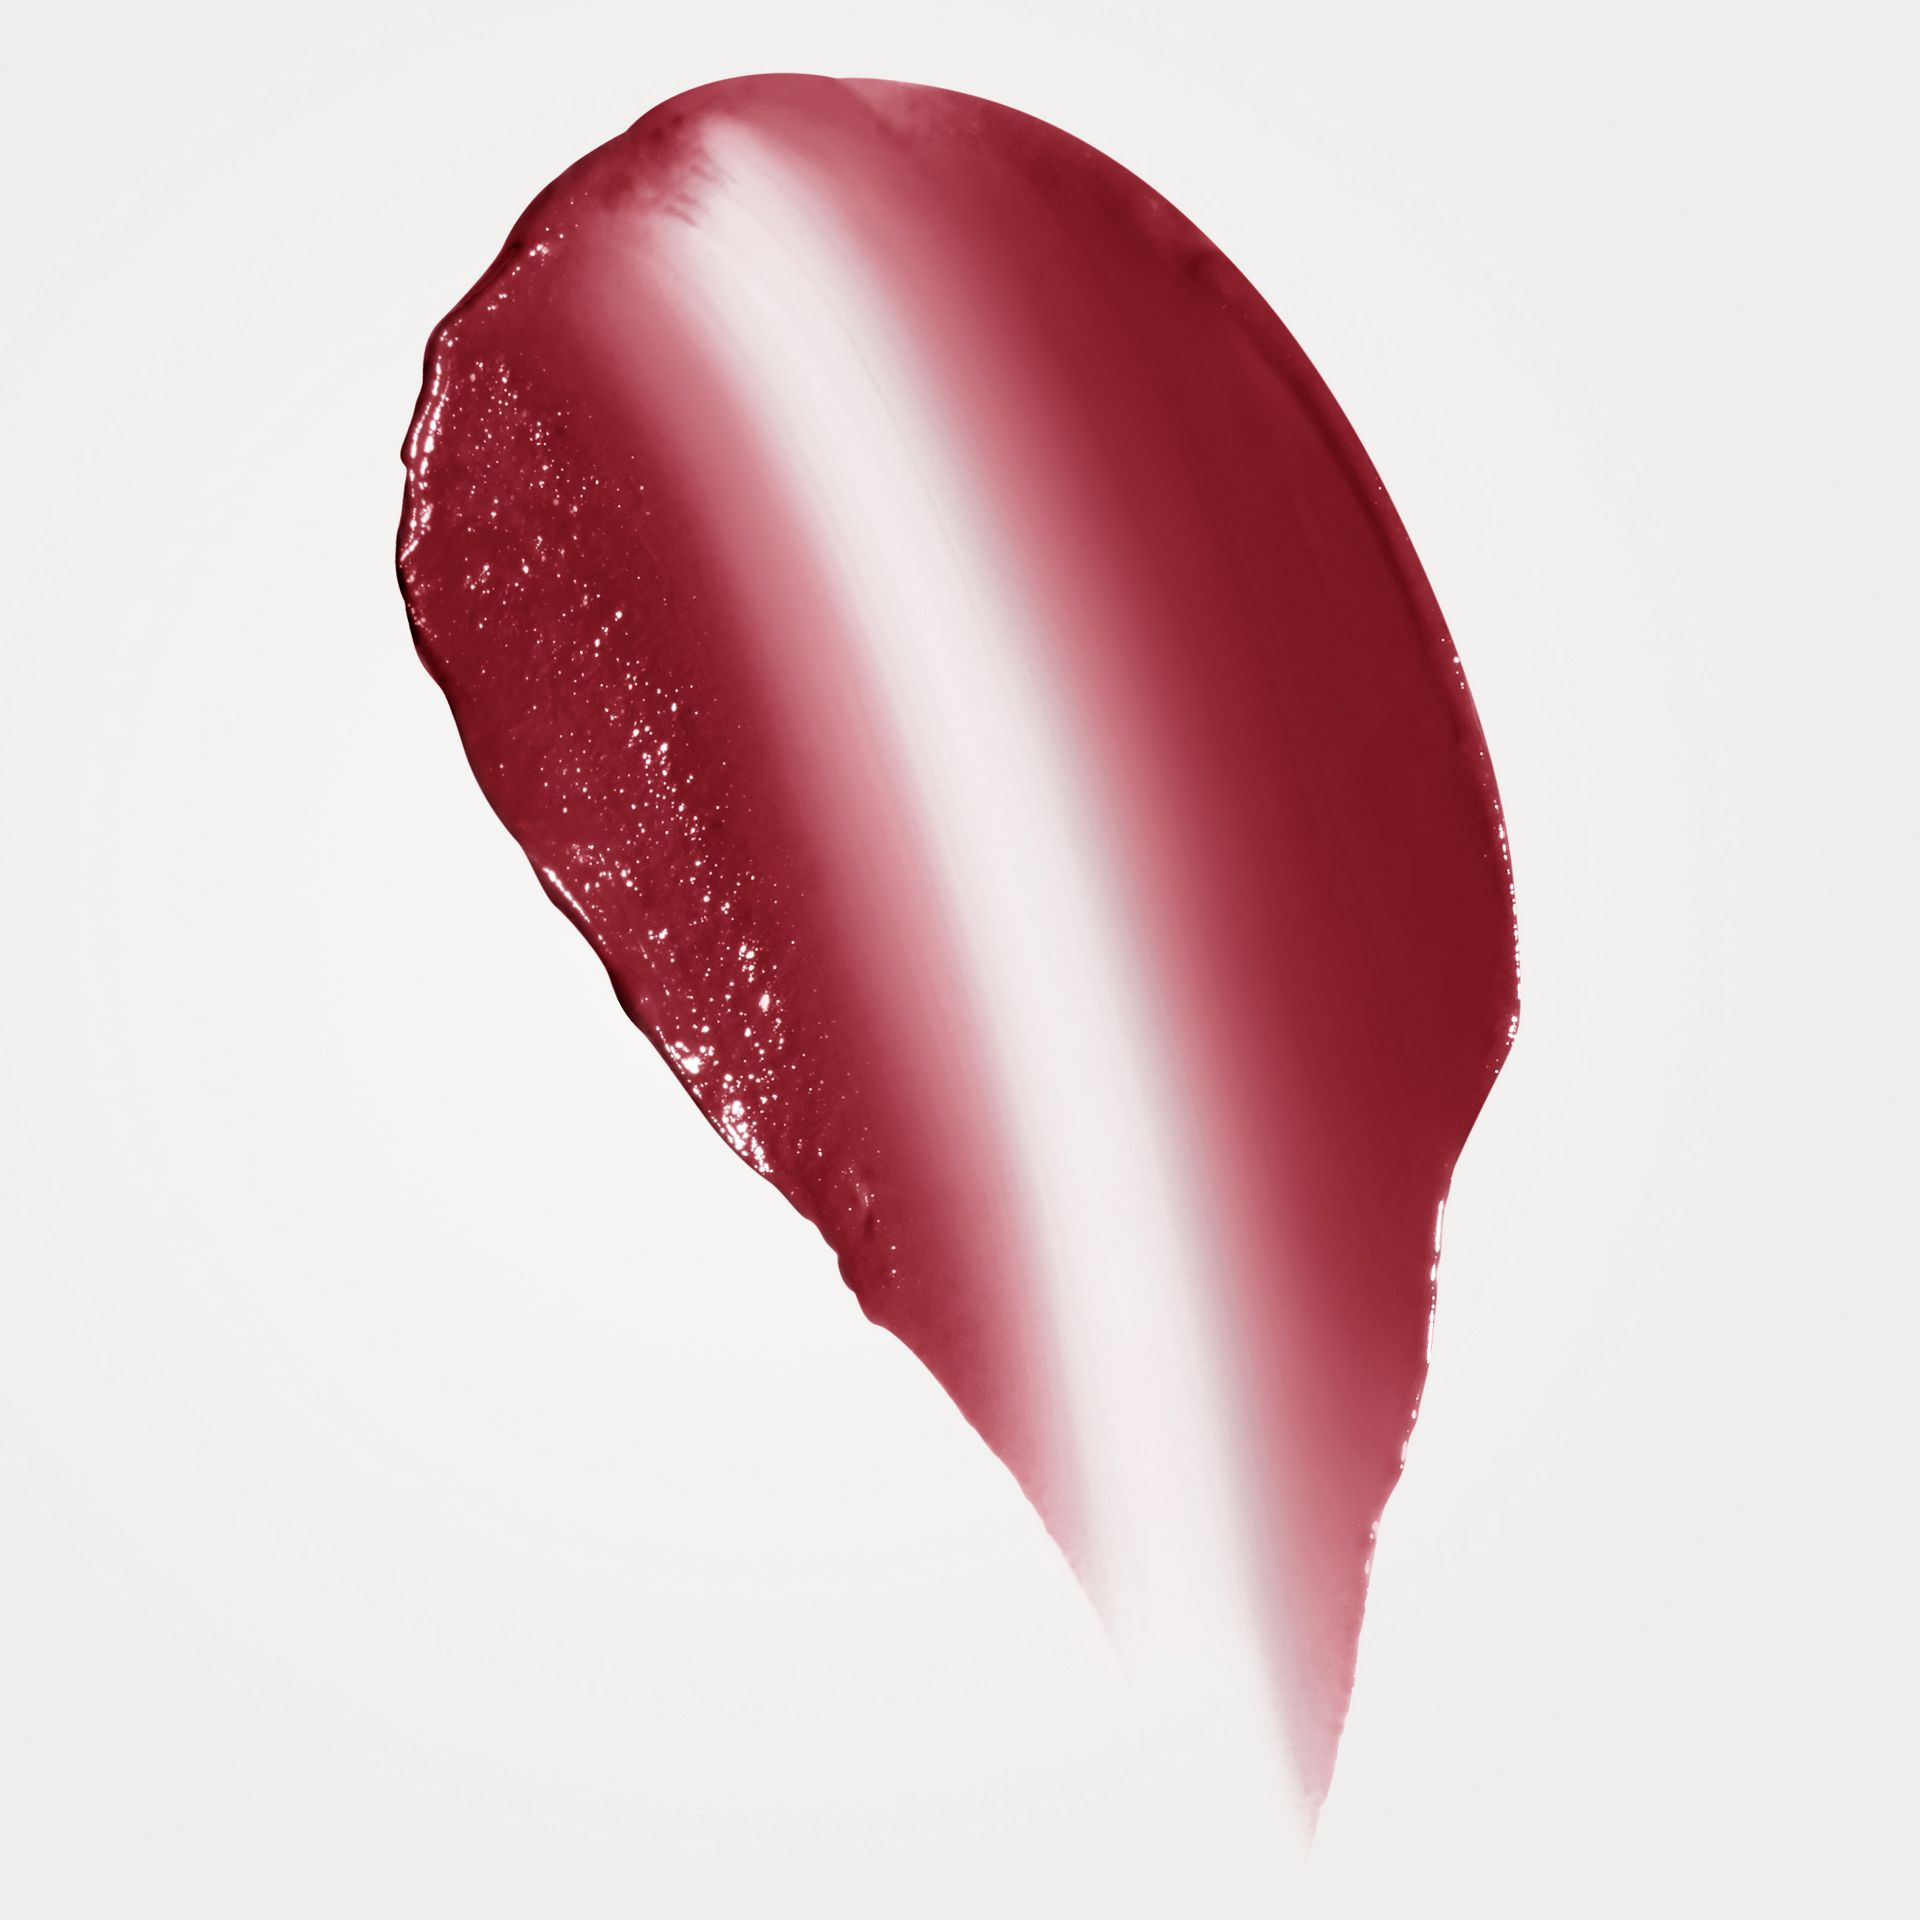 Burberry Kisses Sheer - Midnight Plum No.297 - immagine della galleria 2